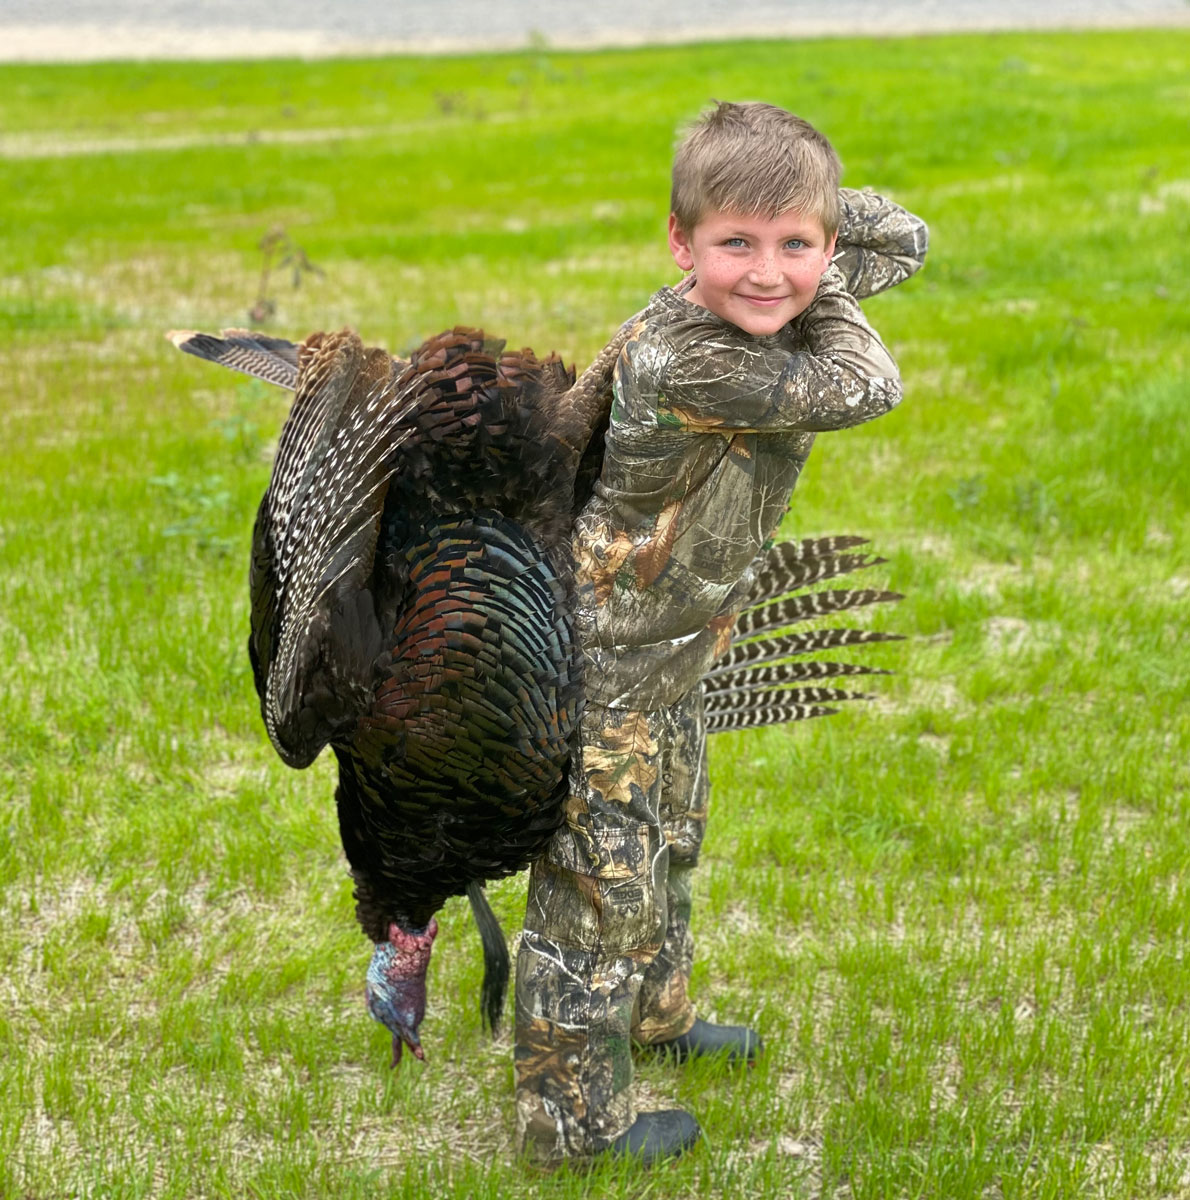 Hayden Johnson killed his third turkey on opening morning of the youth hunt weekend. His turkey had an 11-inch beard and 1 1/8-inch spurs.